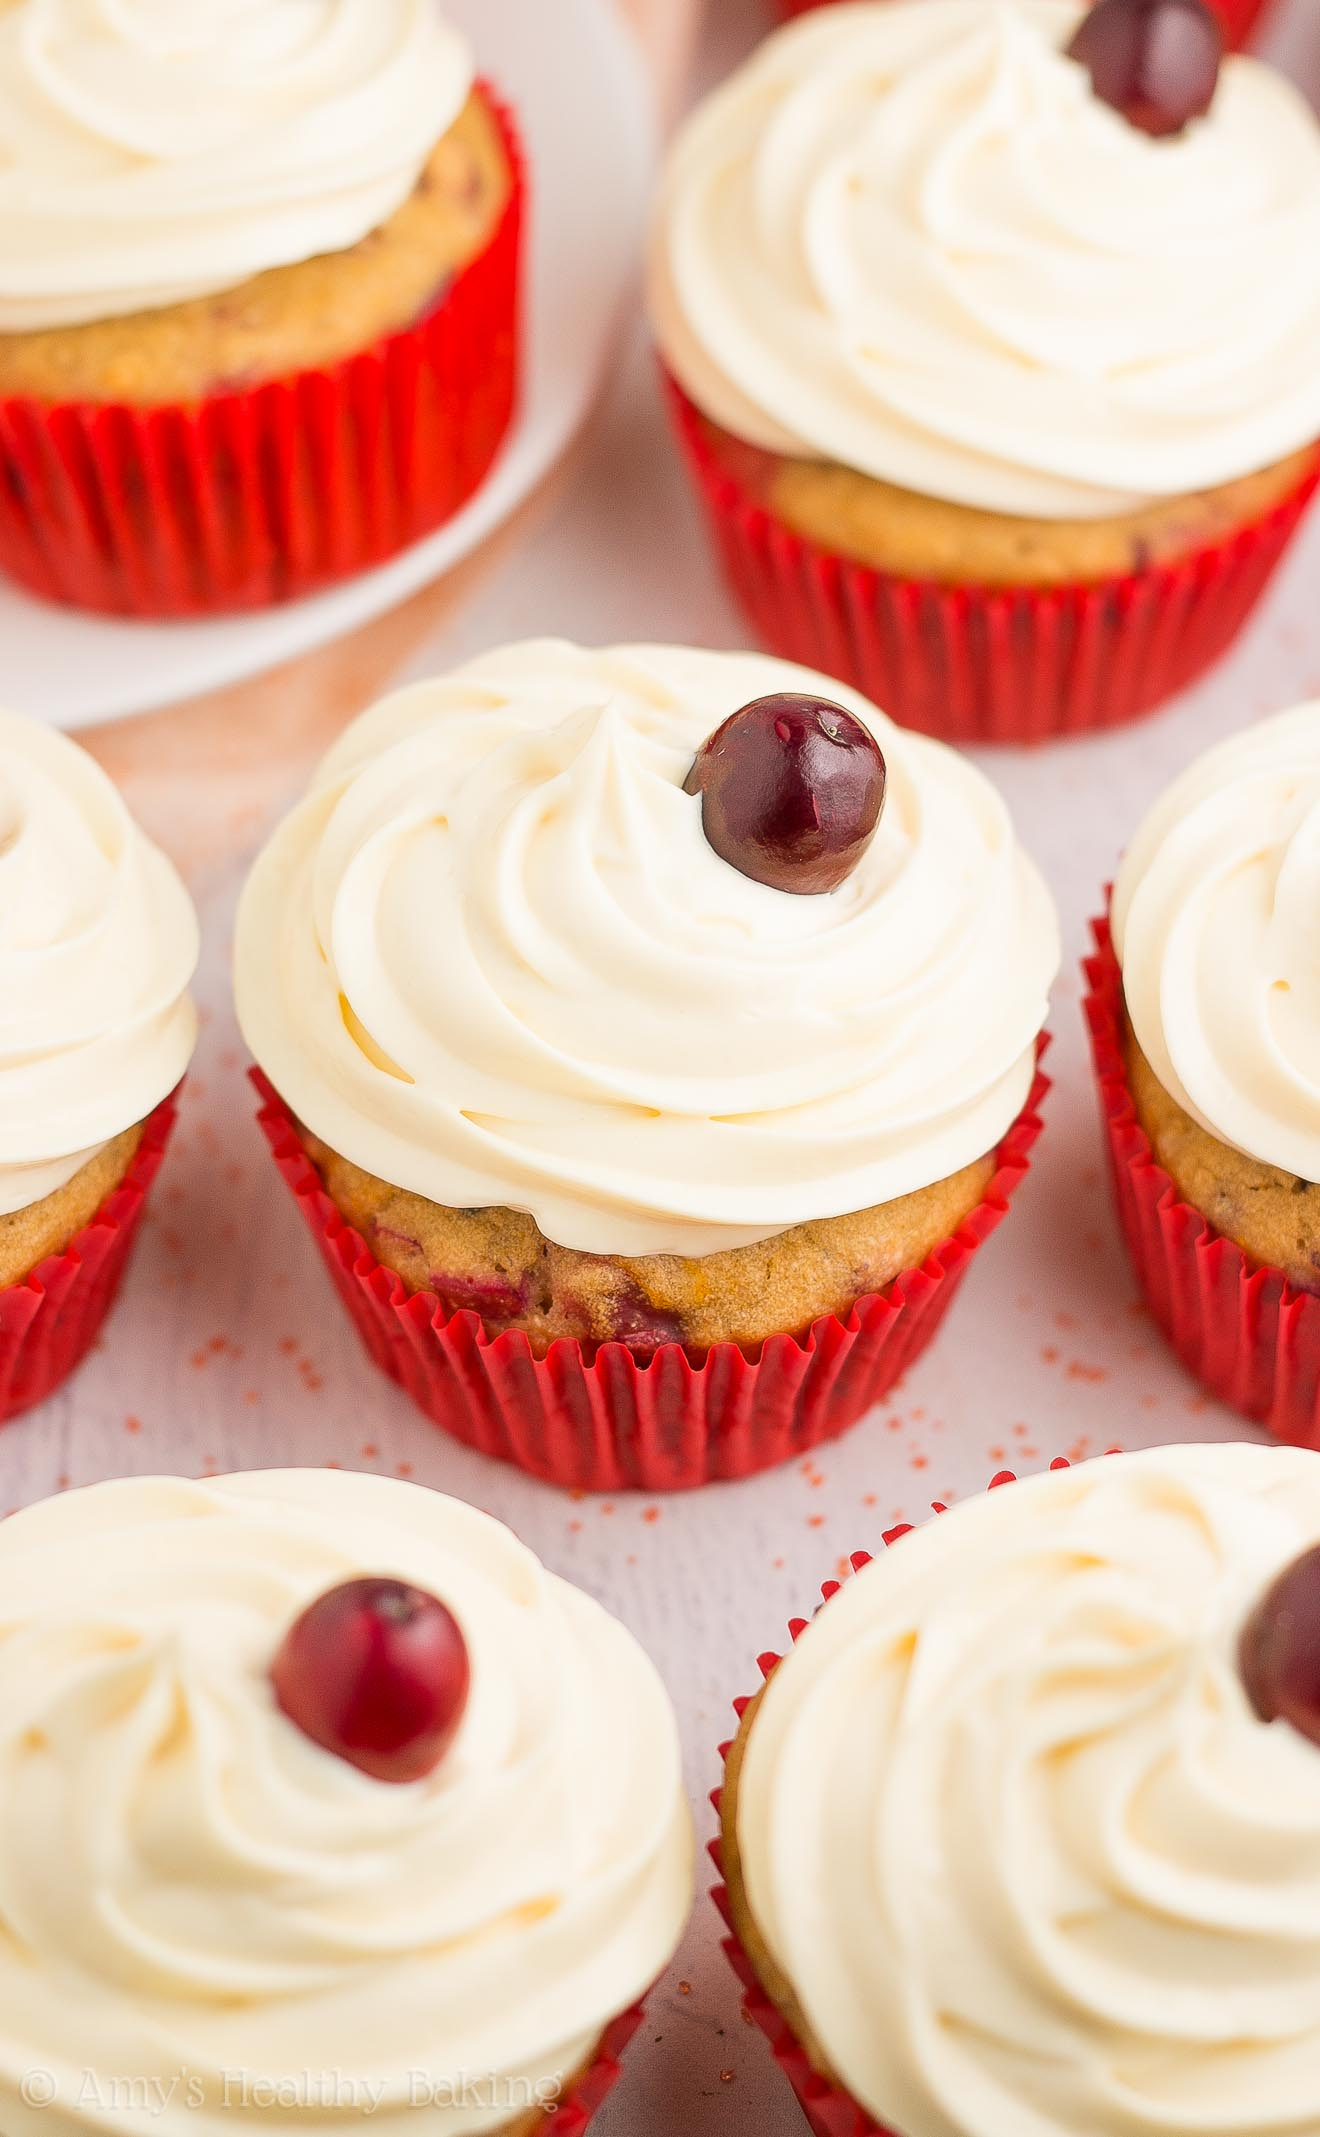 {HEALTHY!} Cranberry Orange Cupcakes -- only 118 calories, including the cream cheese frosting! They taste AMAZING! One of my all-time FAVORITE cupcake recipes! (And the yummy frosting has NO butter or powdered sugar!) #healthy #recipe #glutenfree #cleaneating